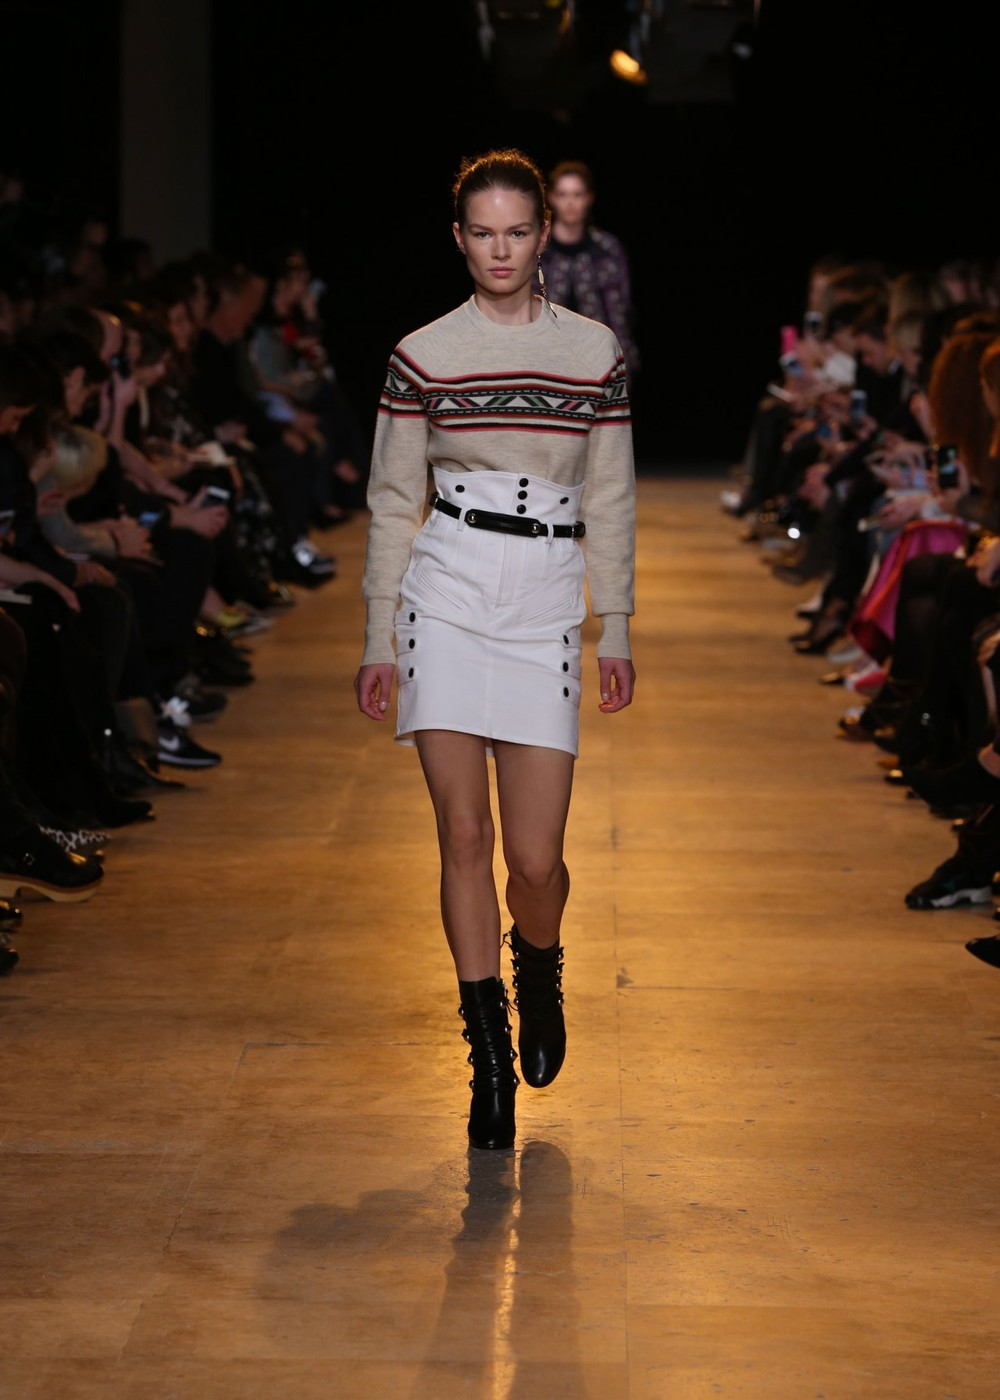 collection_fiche_origin_isabel_marant_fw15_look6_36a15.jpg